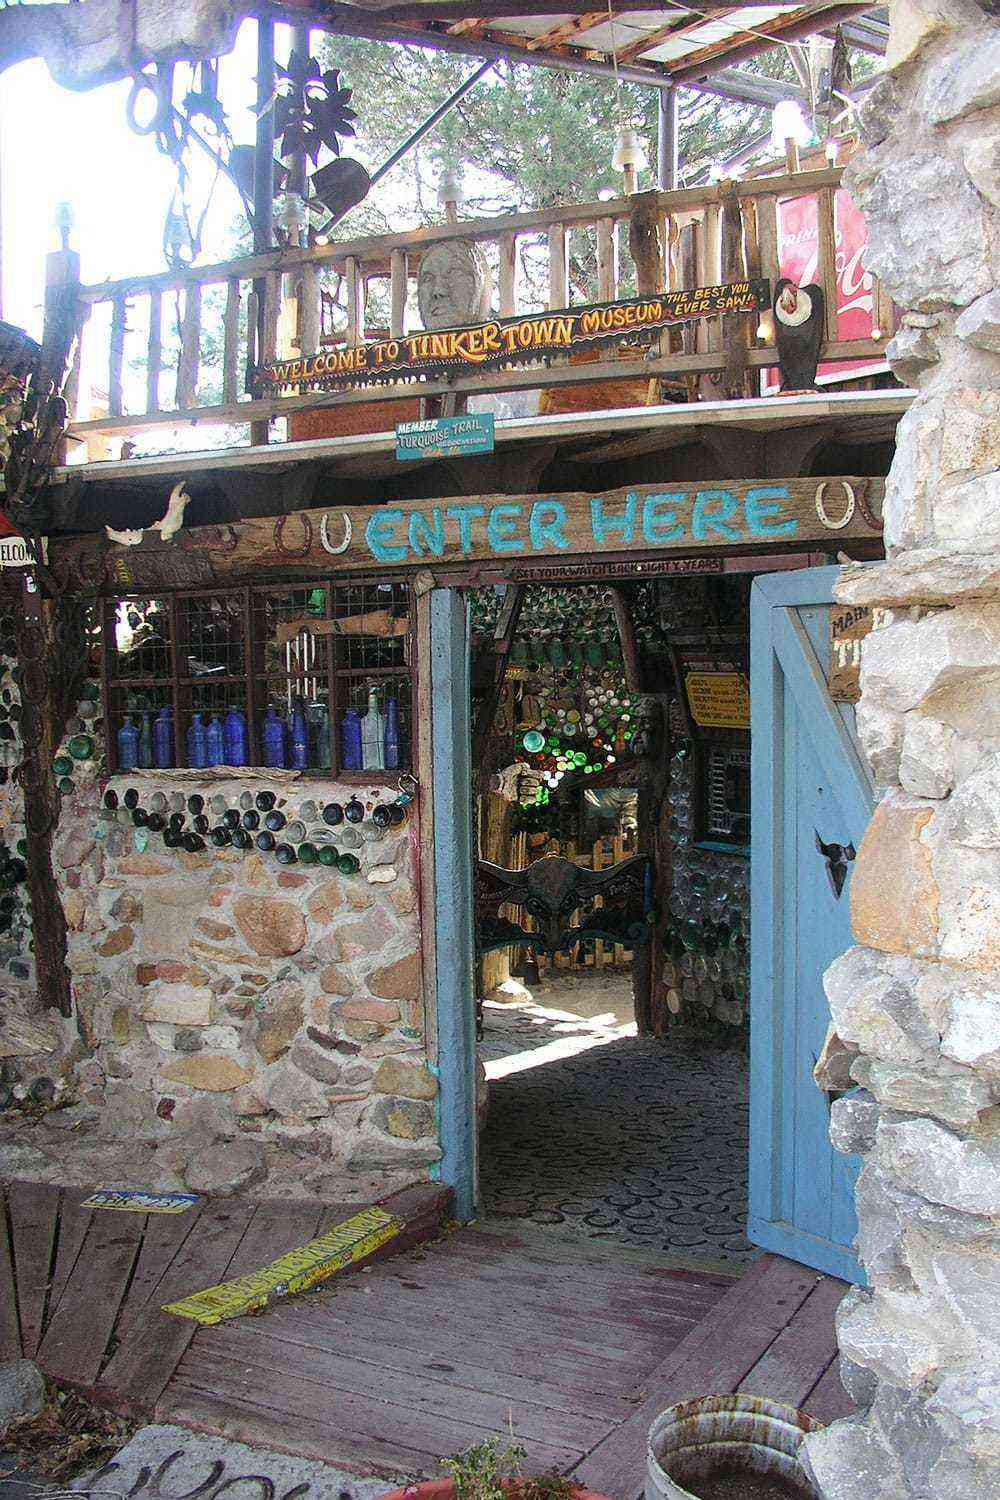 Quirky-Southwest-Museums-Tinkertown-Museum-2